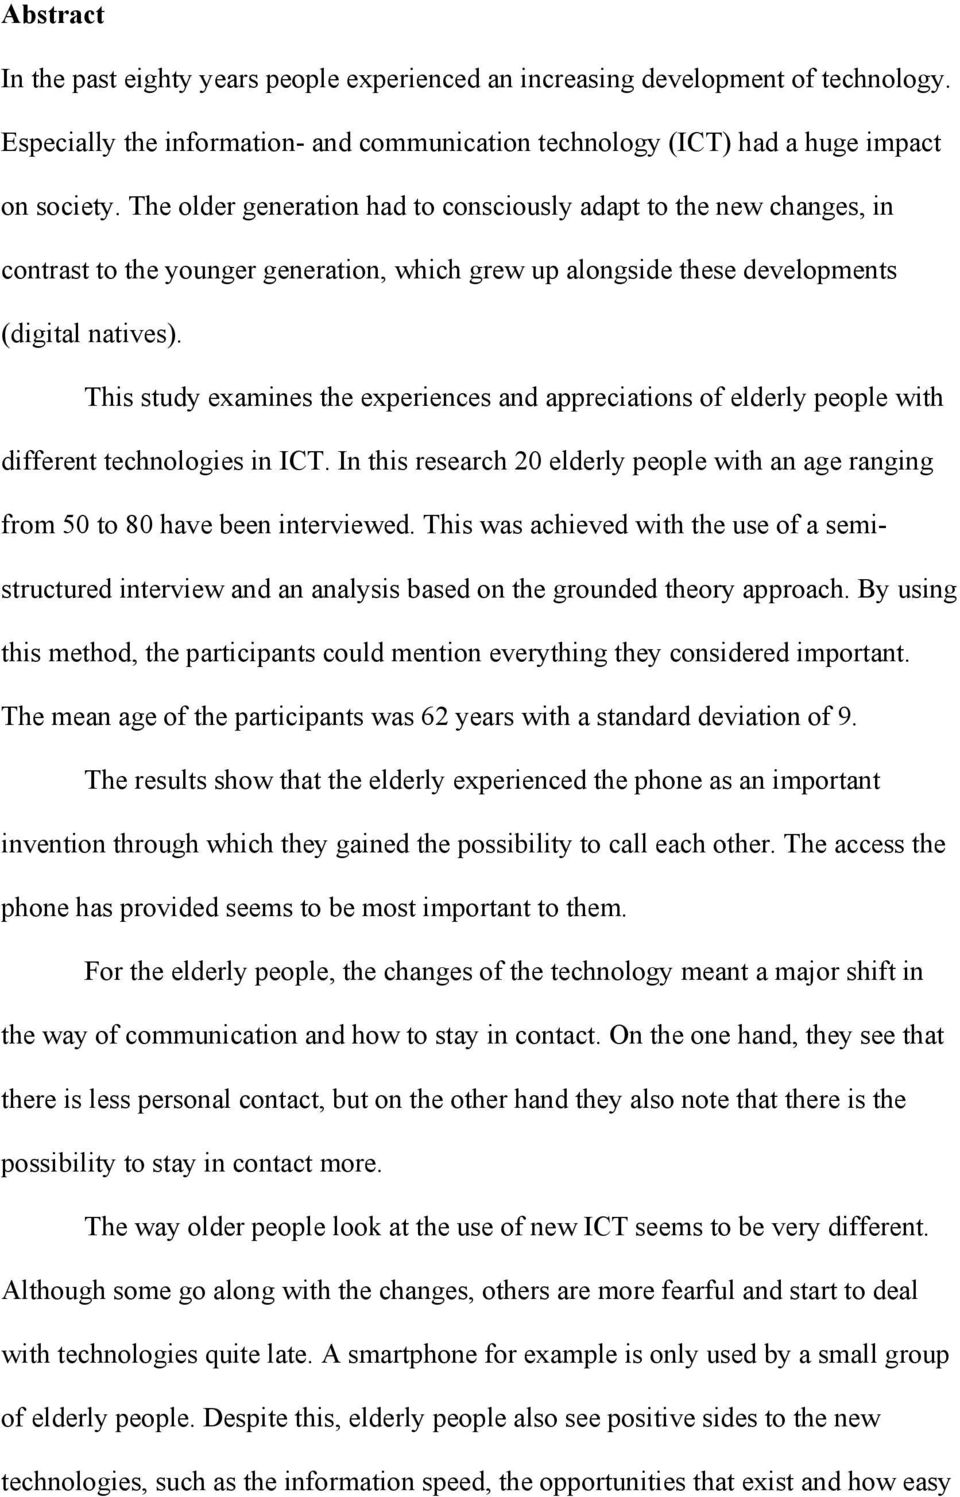 This study examines the experiences and appreciations of elderly people with different technologies in ICT. In this research 20 elderly people with an age ranging from 50 to 80 have been interviewed.